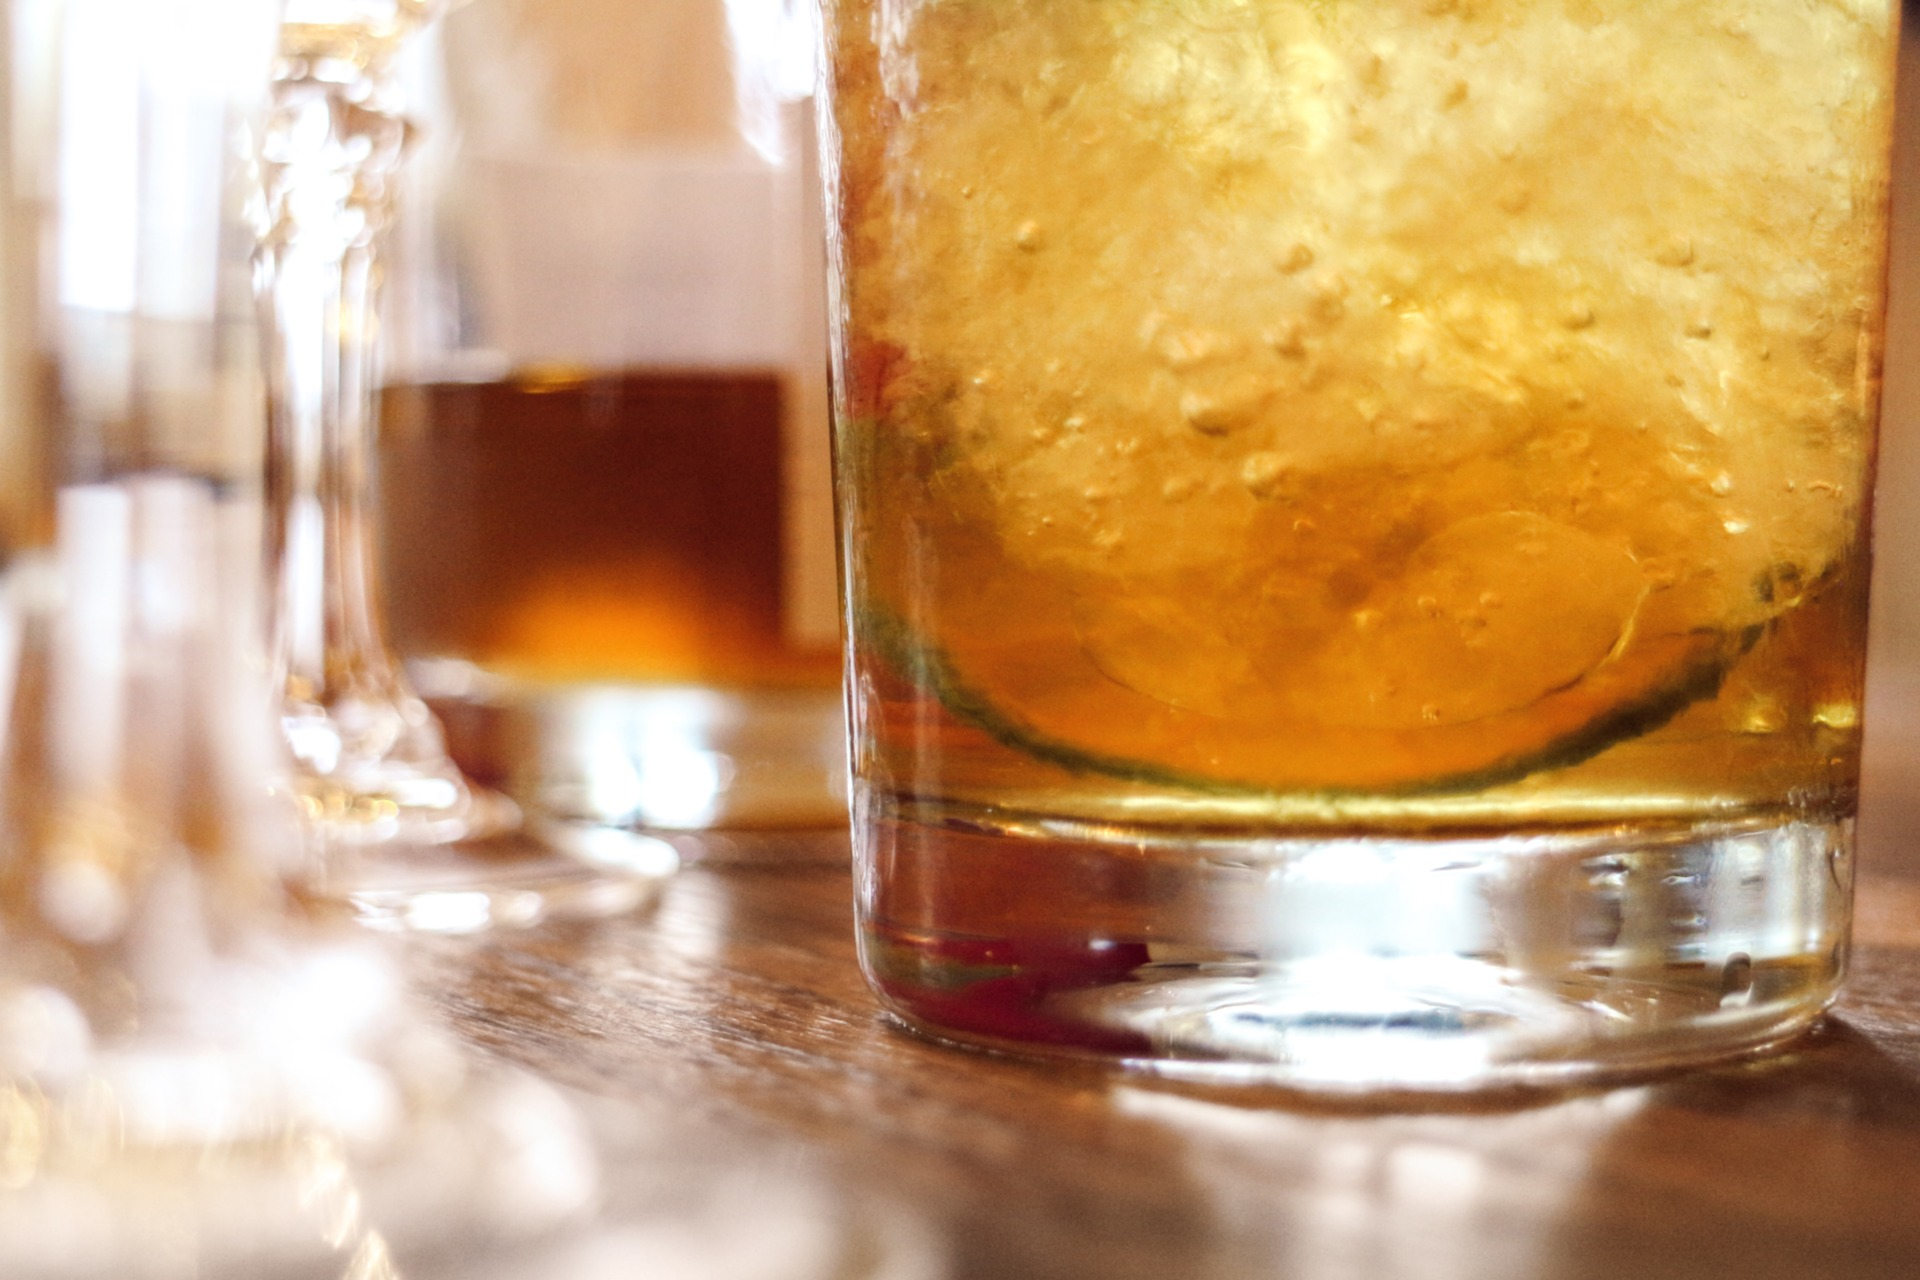 The whisky tumbler (aka the rocks glass, the old fashioned glass, the lowball)